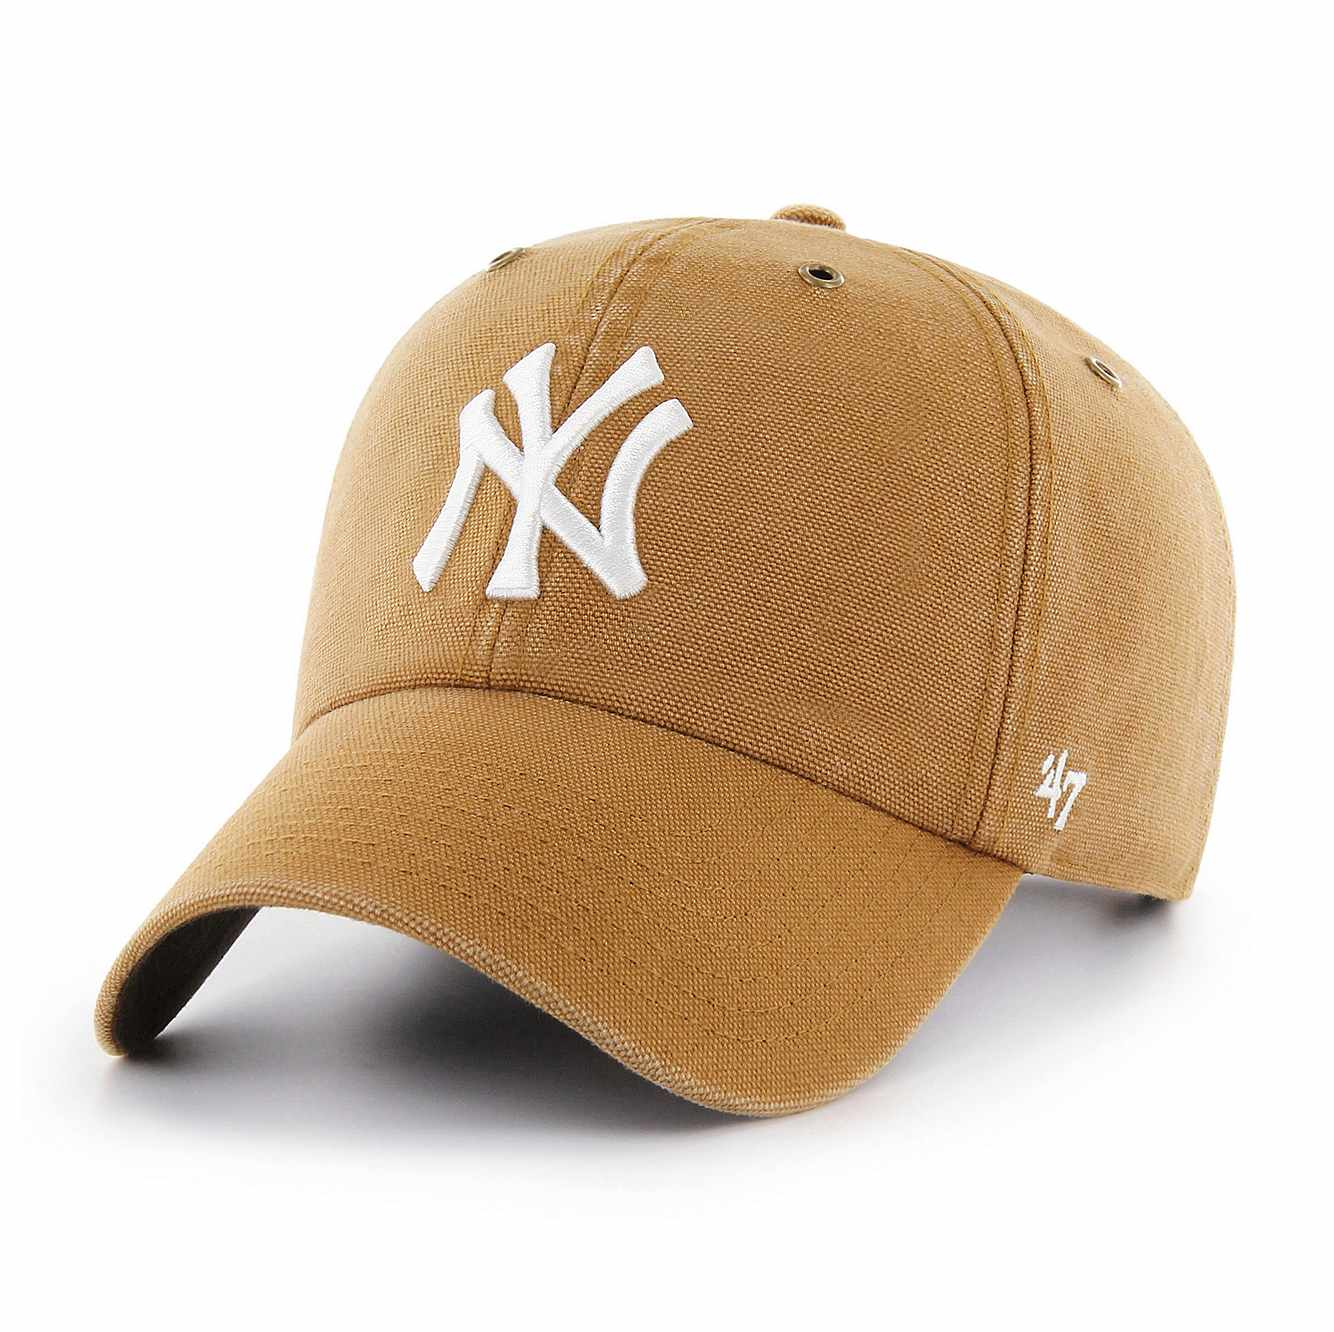 Picture of New York Yankees Carhartt x '47 Clean Up in Carhartt Brown